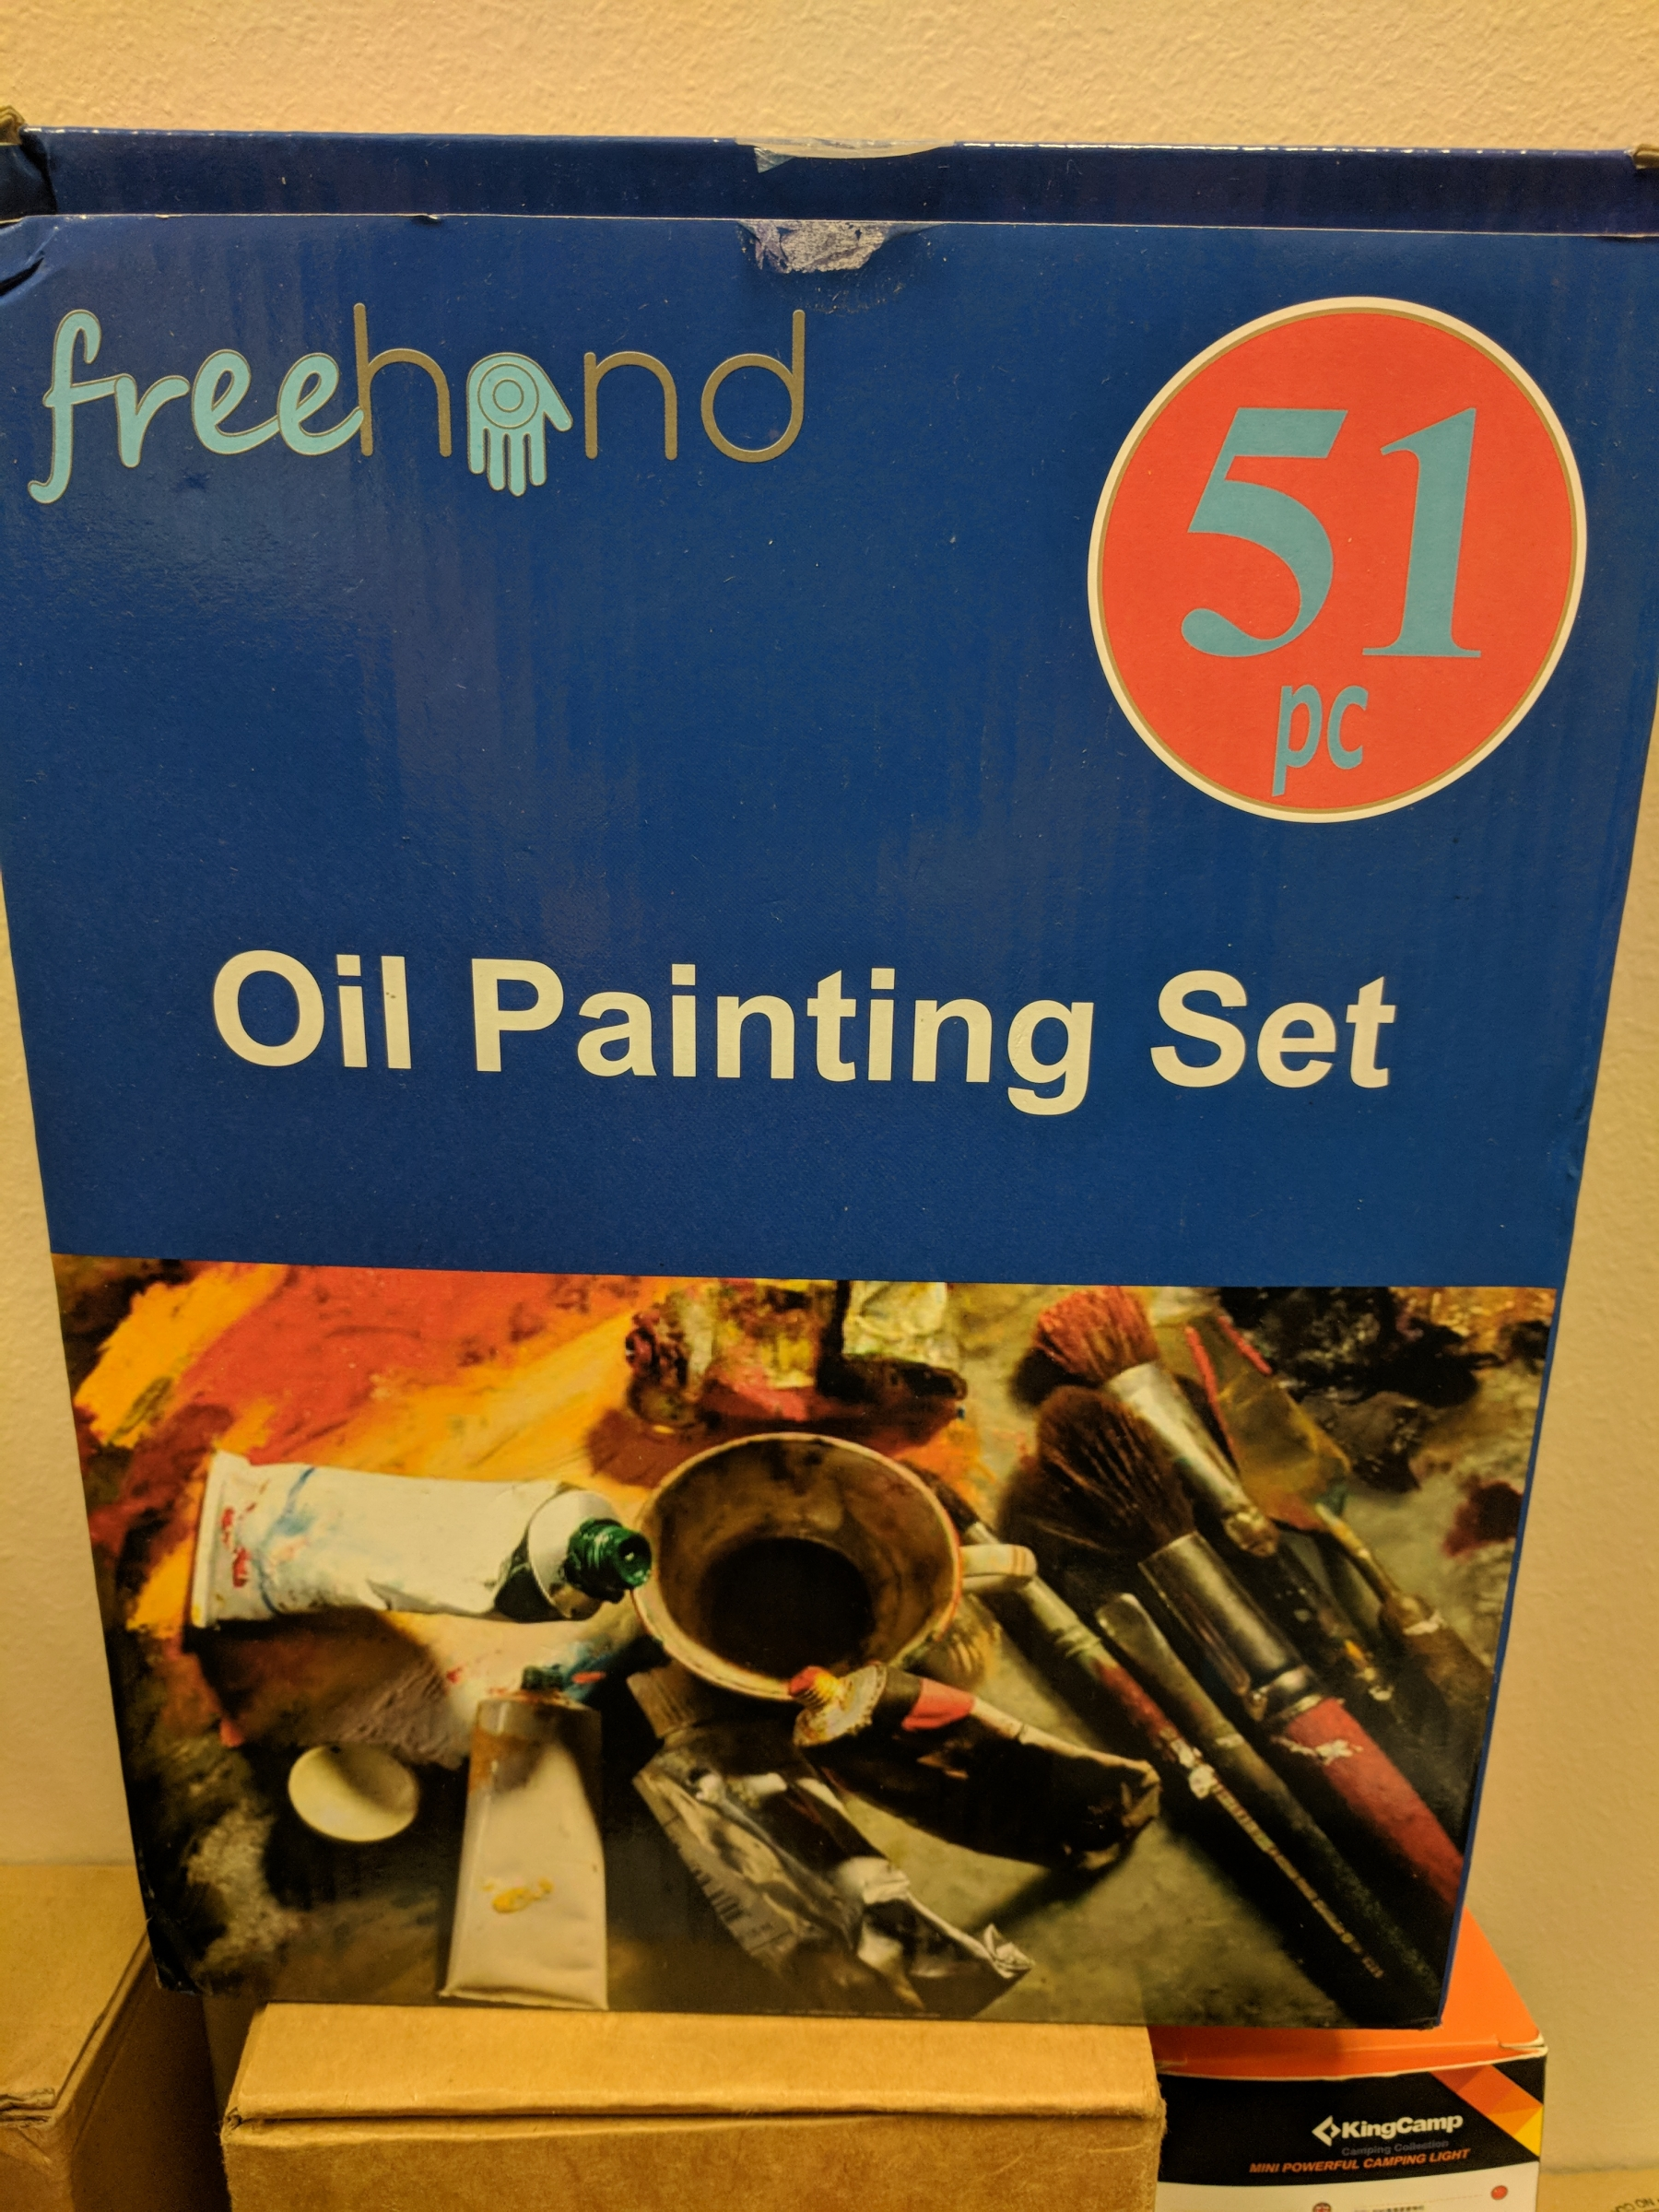 Simply put, every thing you need to paint!